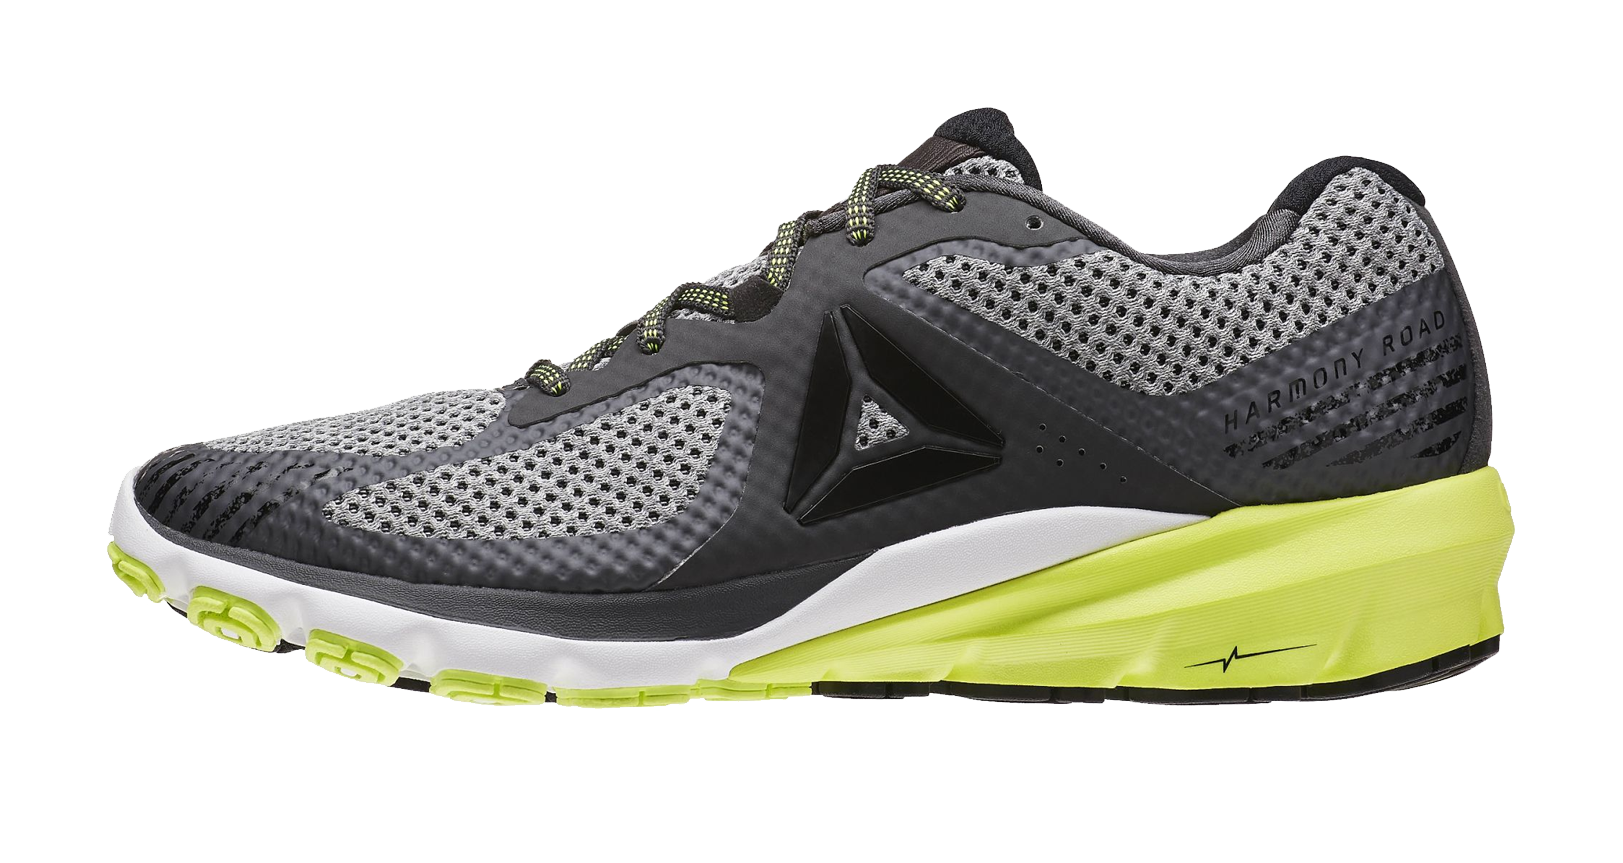 fdb440c9a6b1 Reebok Harmony Road Performance Review » Believe in the Run